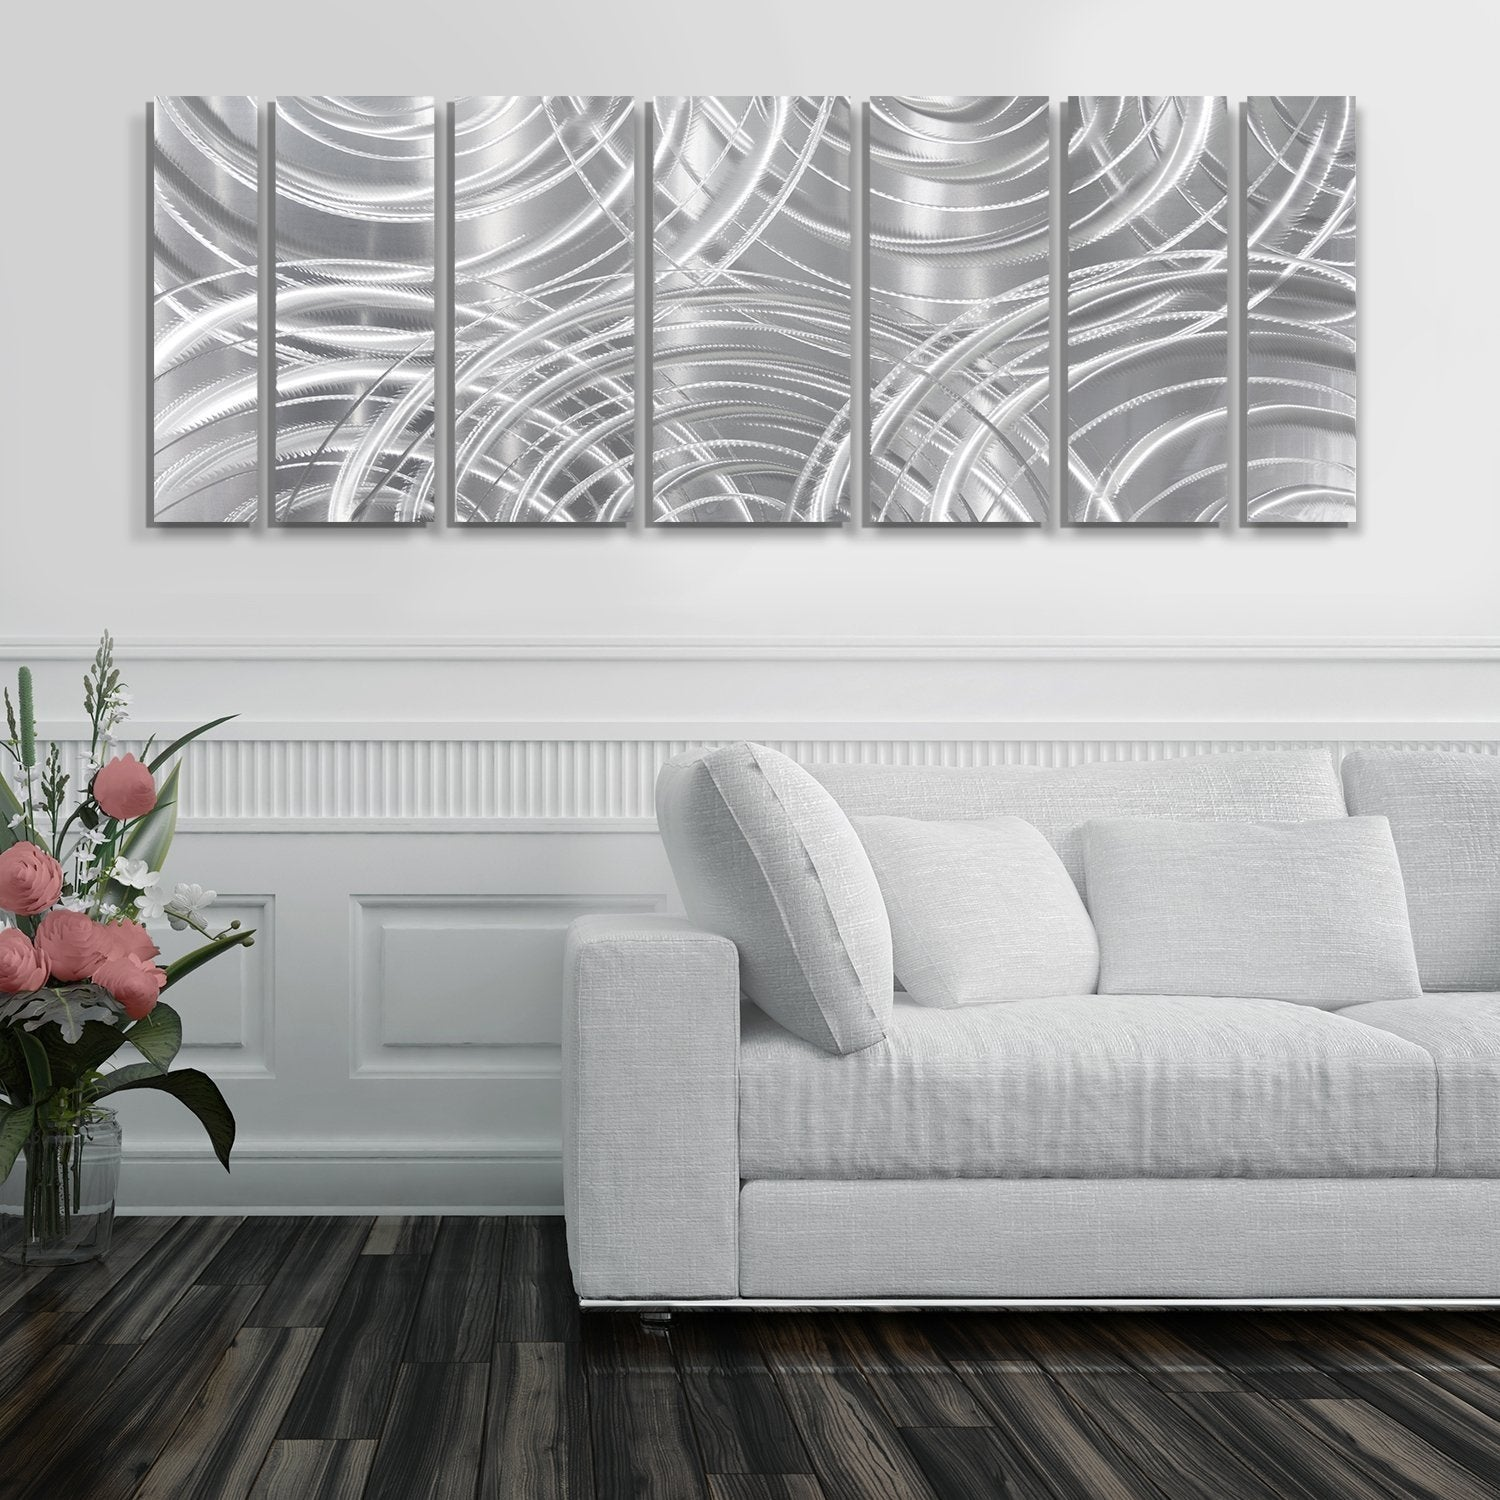 Image of: Shop Black Friday Deals On Statements2000 Large Metal Wall Art Modern Abstract Silver Decor By Jon Allen Moving Forward Overstock 27976560